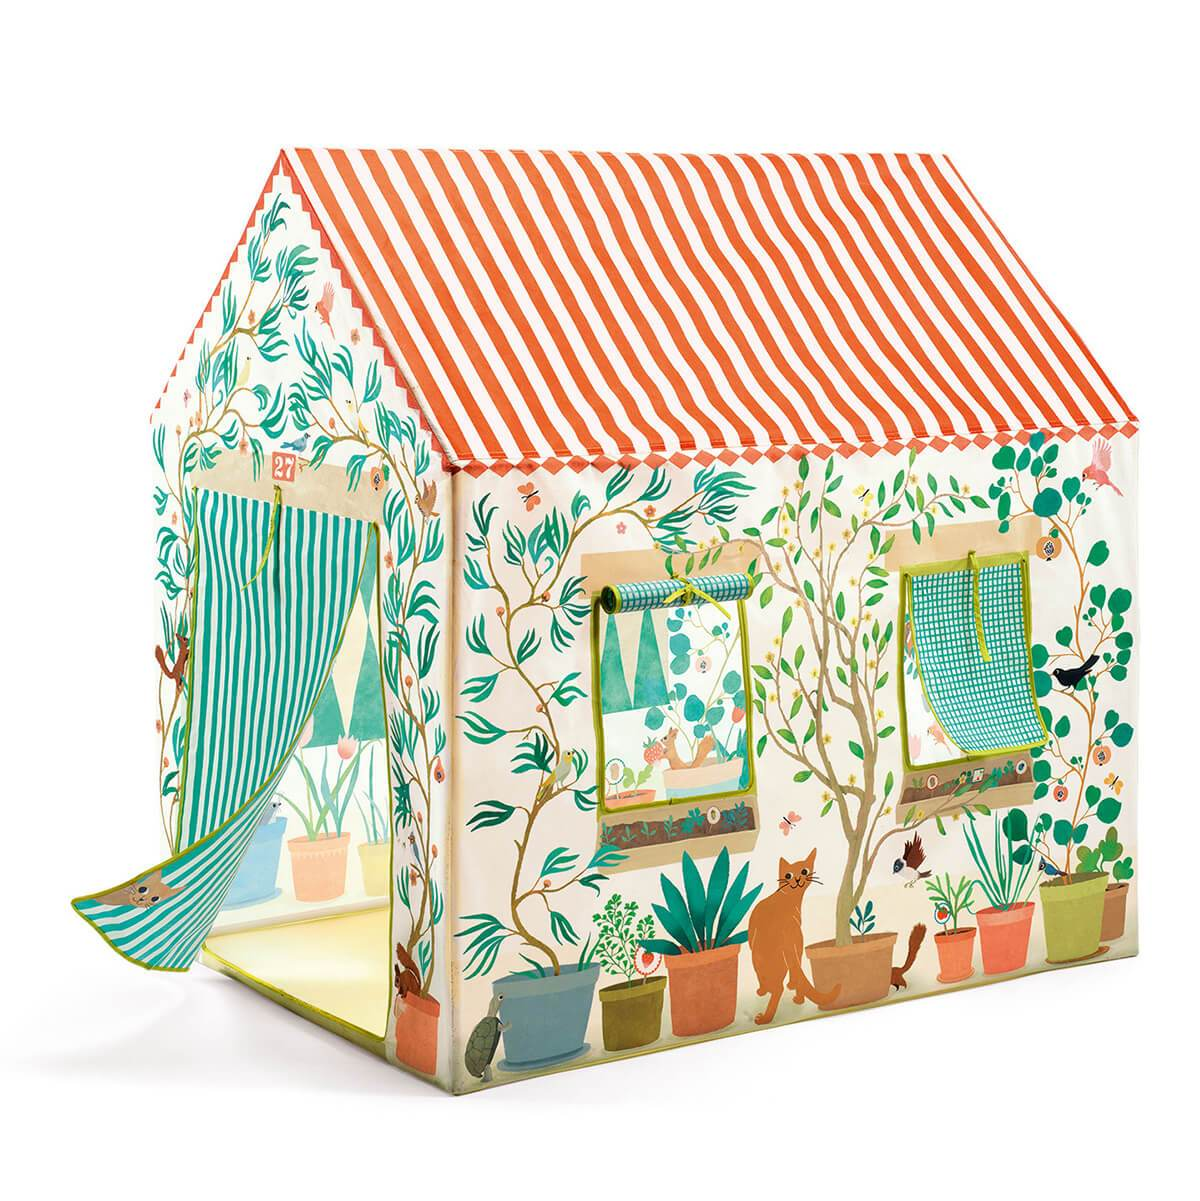 Maison Playhouse Tent